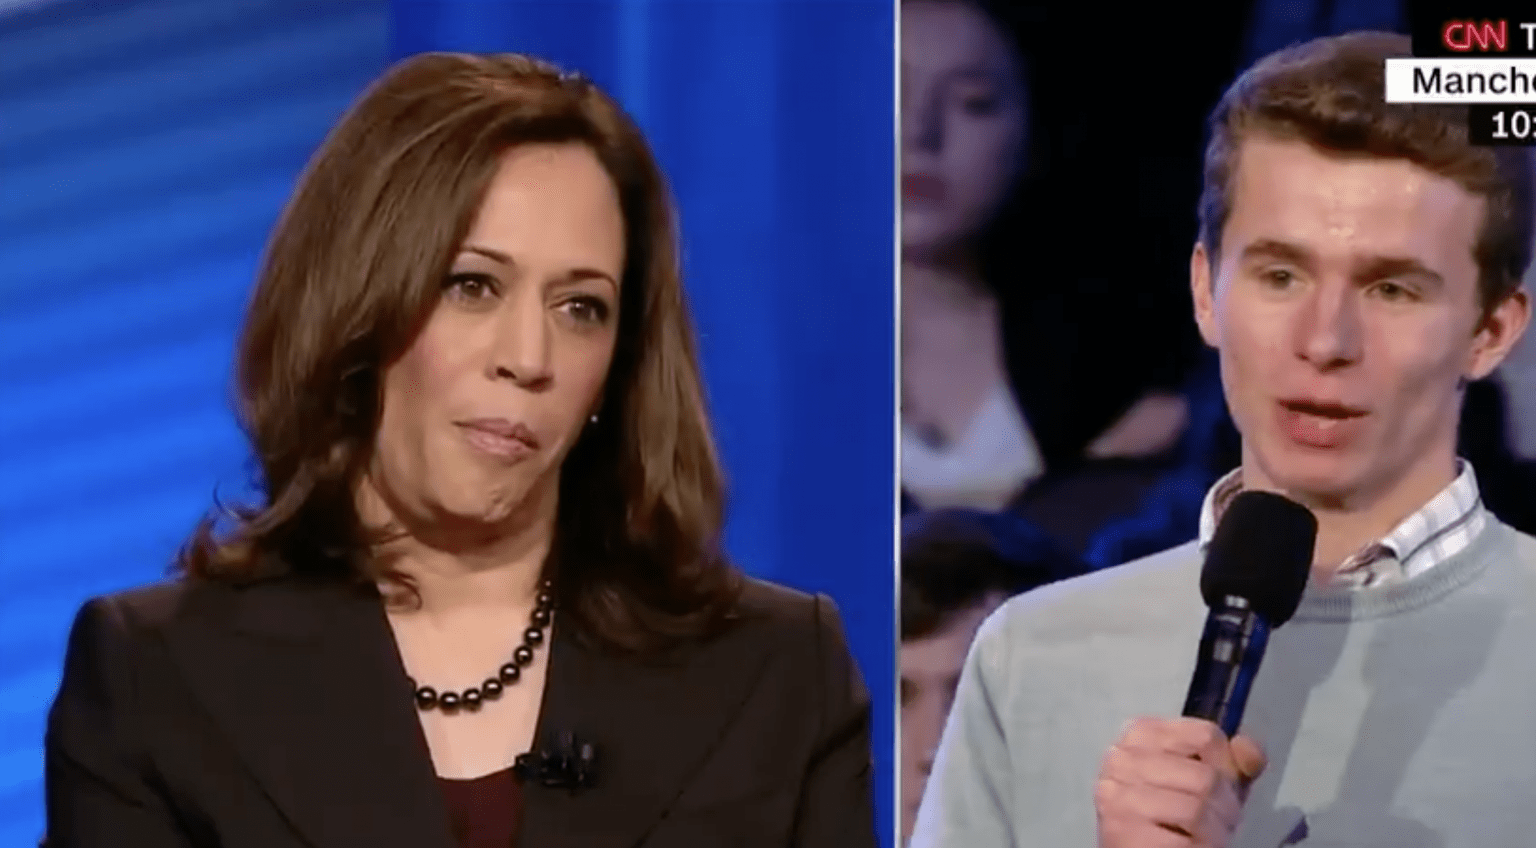 Flashback: Kamala Harris pledged to use executive order for gun control in first 100 days of presidency